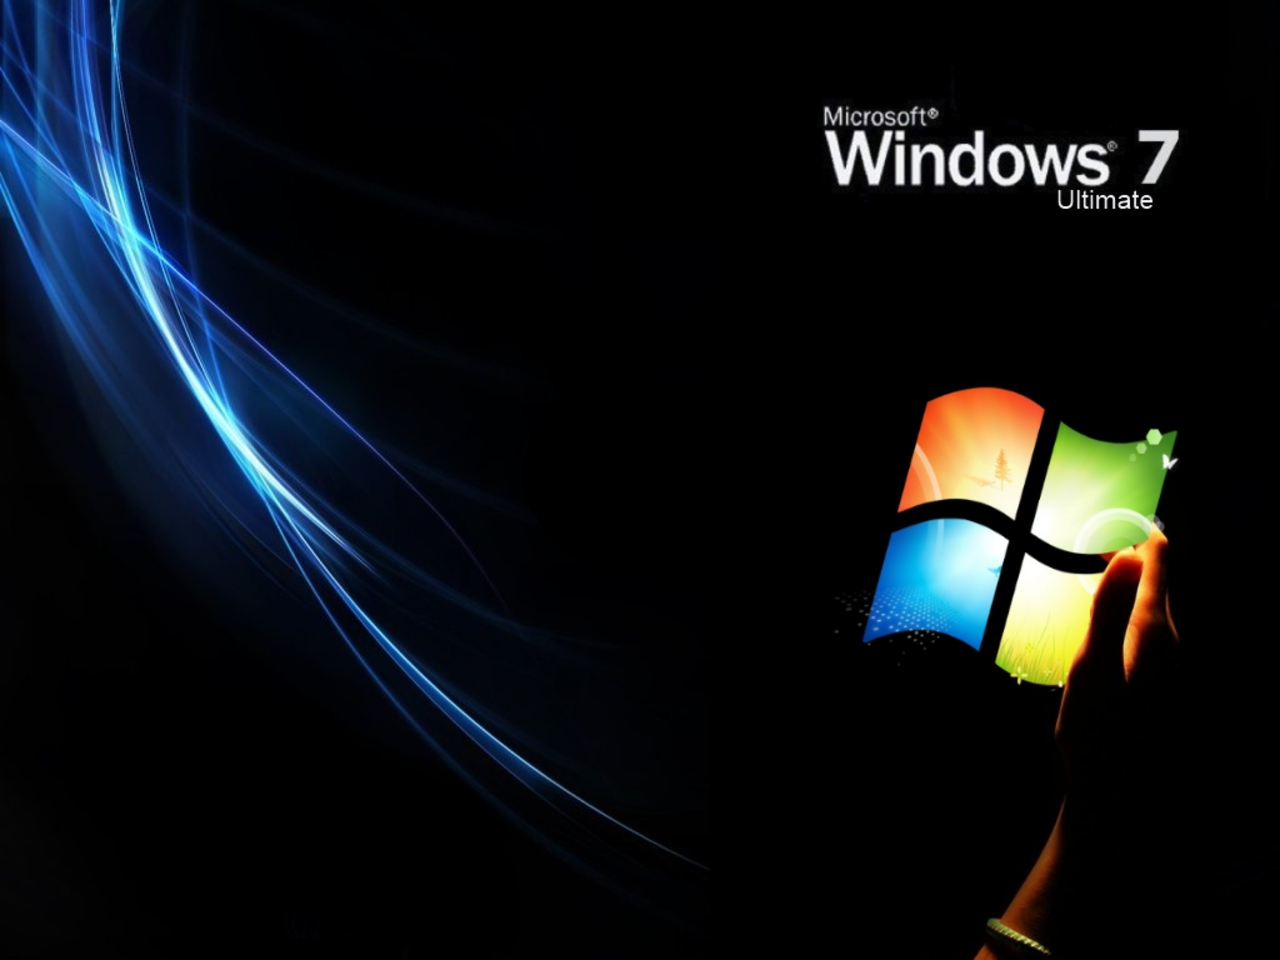 2015 By Stephen Comments Off on HD Wallpapers for Windows 7 Ultimate 1280x960